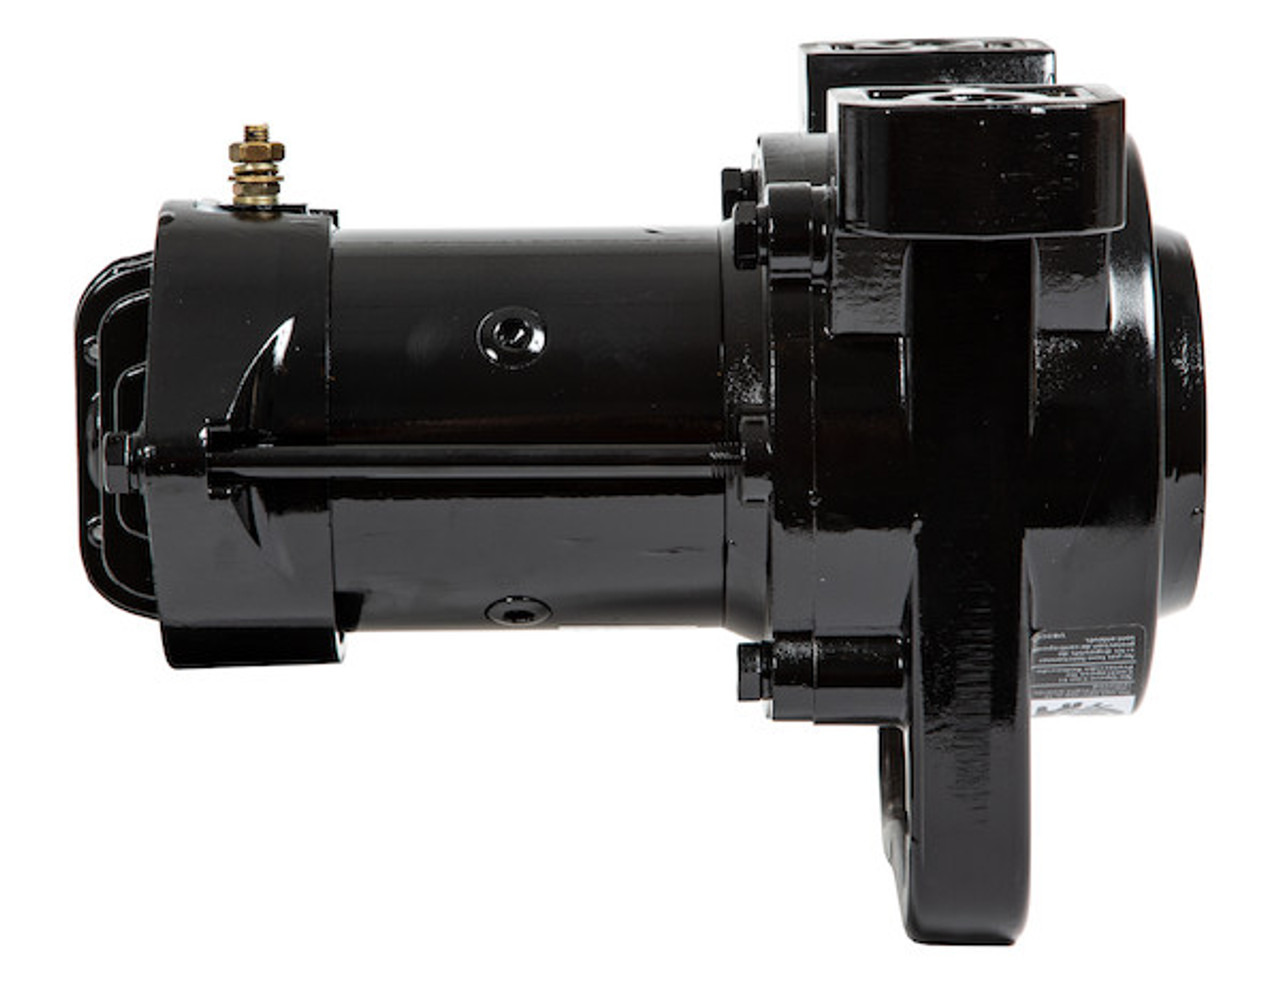 DBV2500 2500LB VIBRATOR with Mounting Kit for Dump trucks and Buyers Saltdogg Salt Spreader for 1406657SSH Picture #3